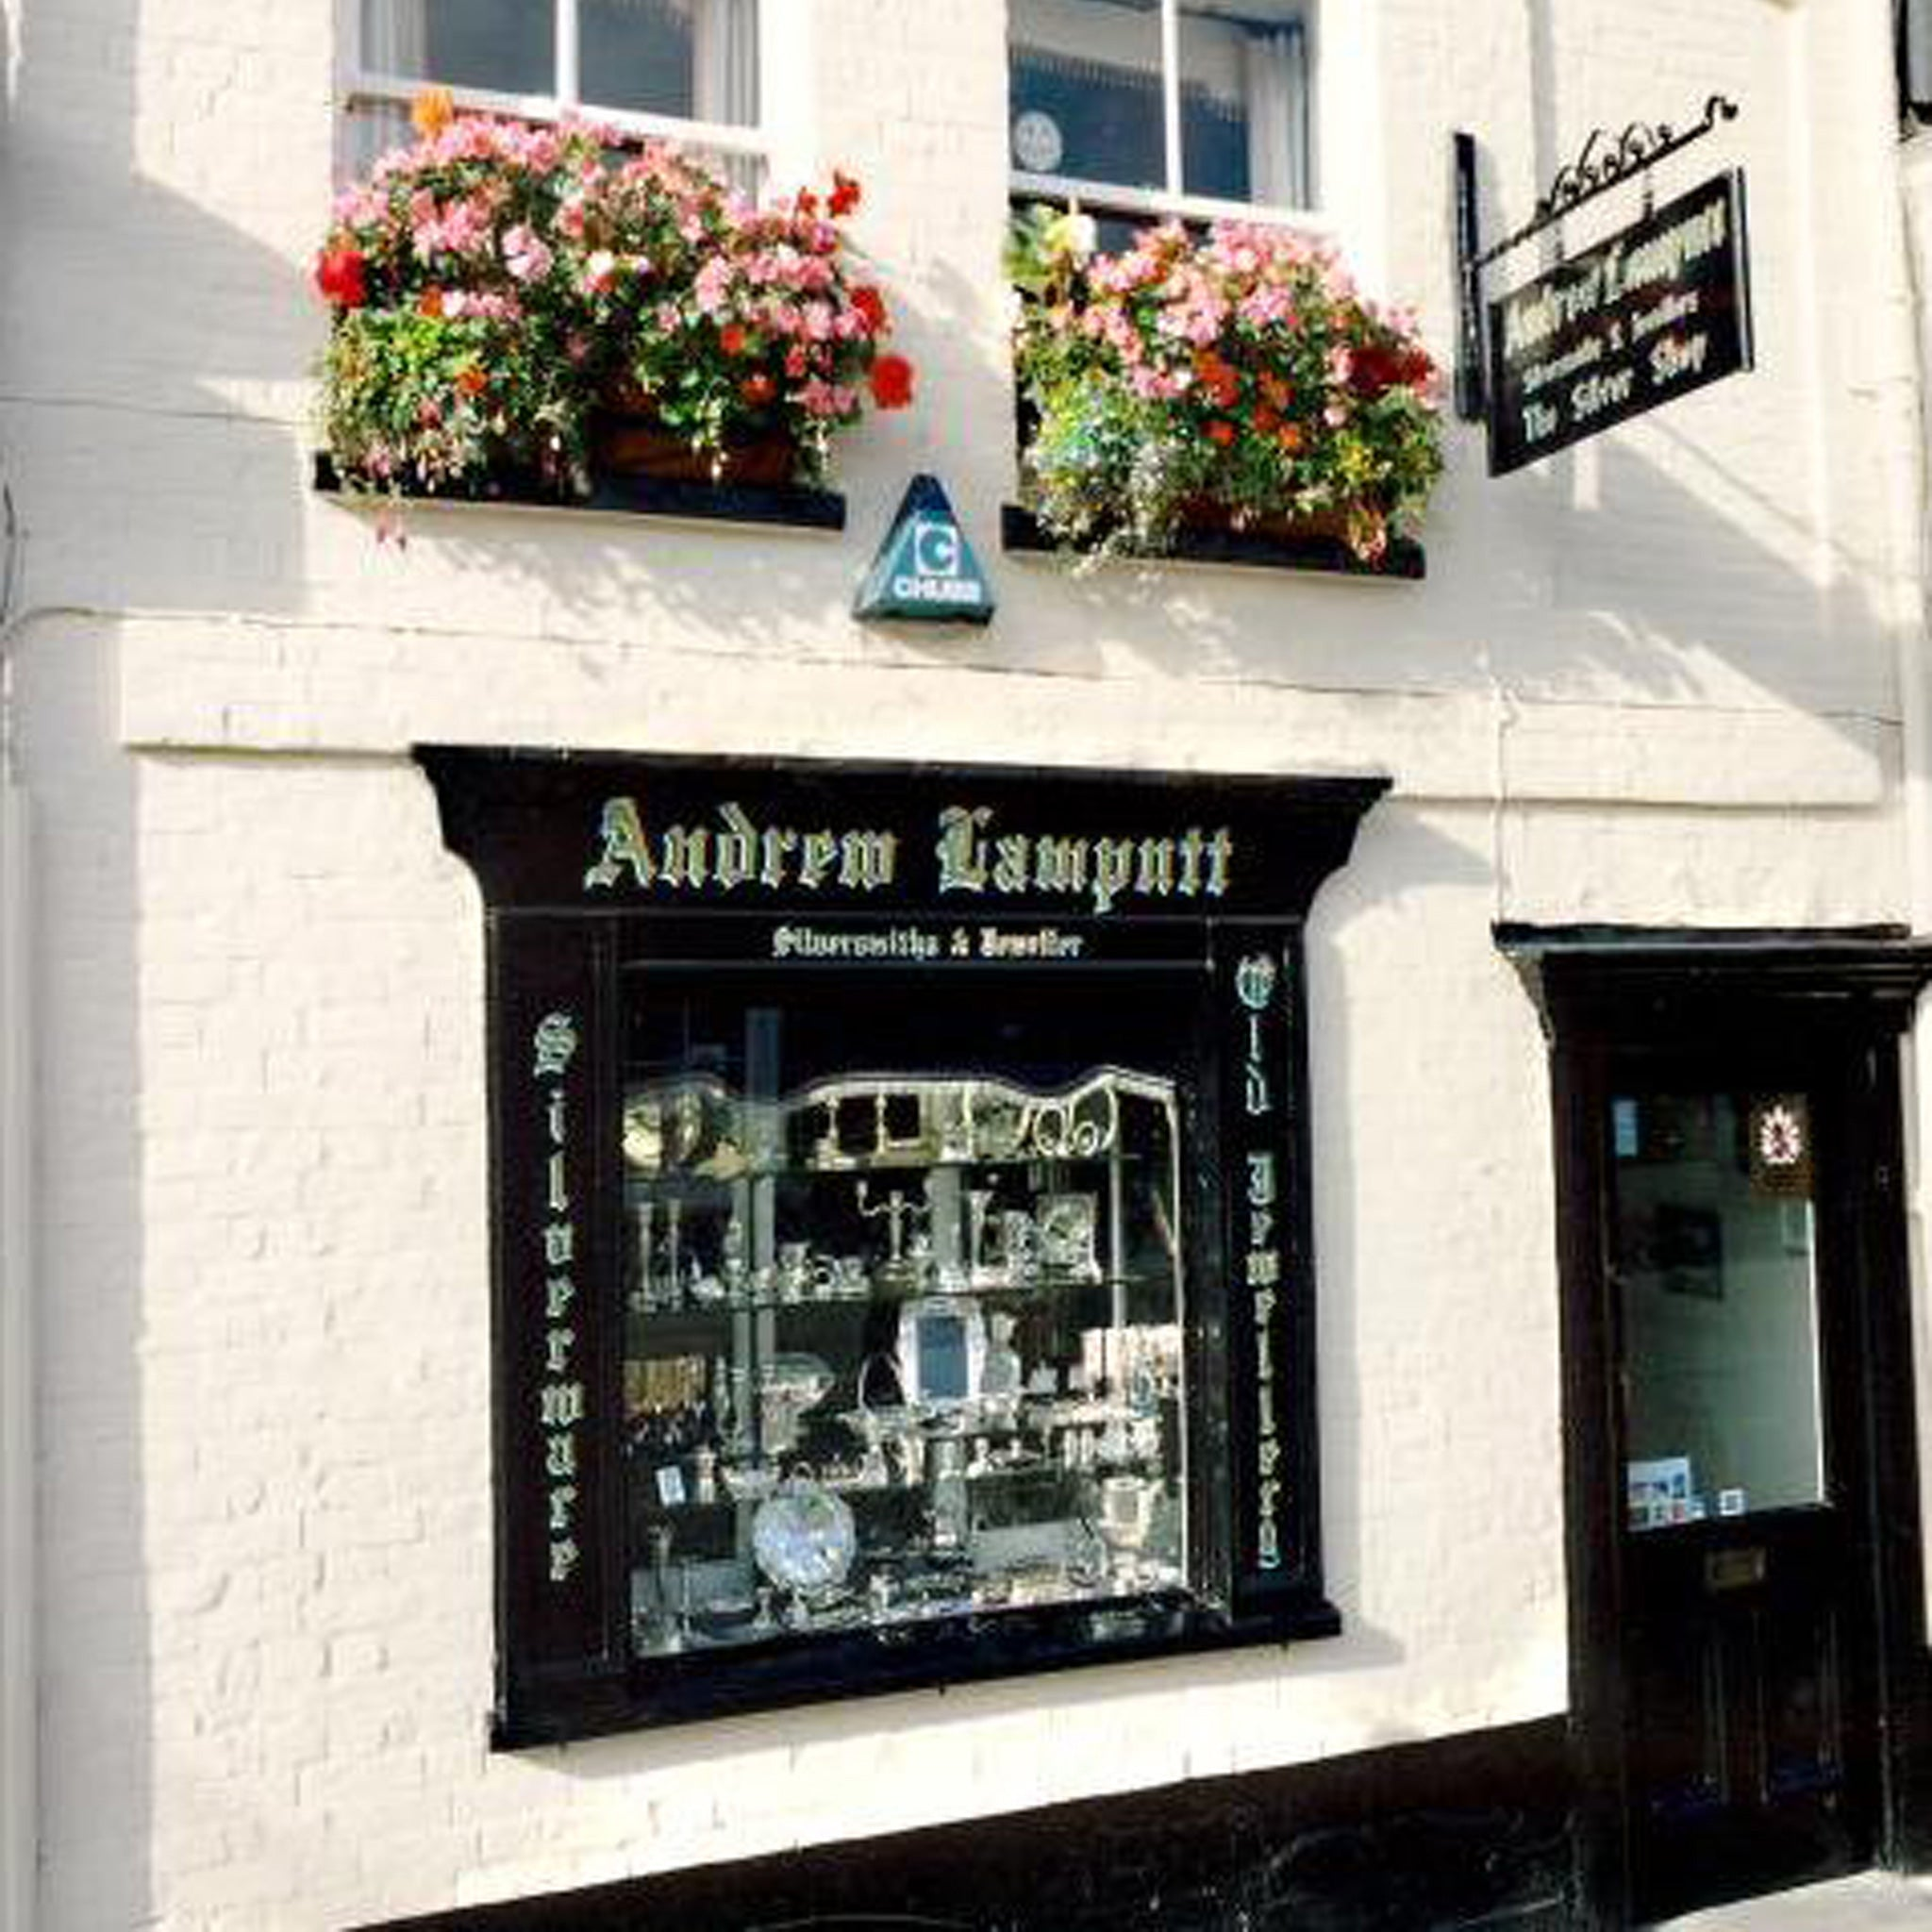 Andrew Lamputt Silvermsith & Jeweller Shop Front